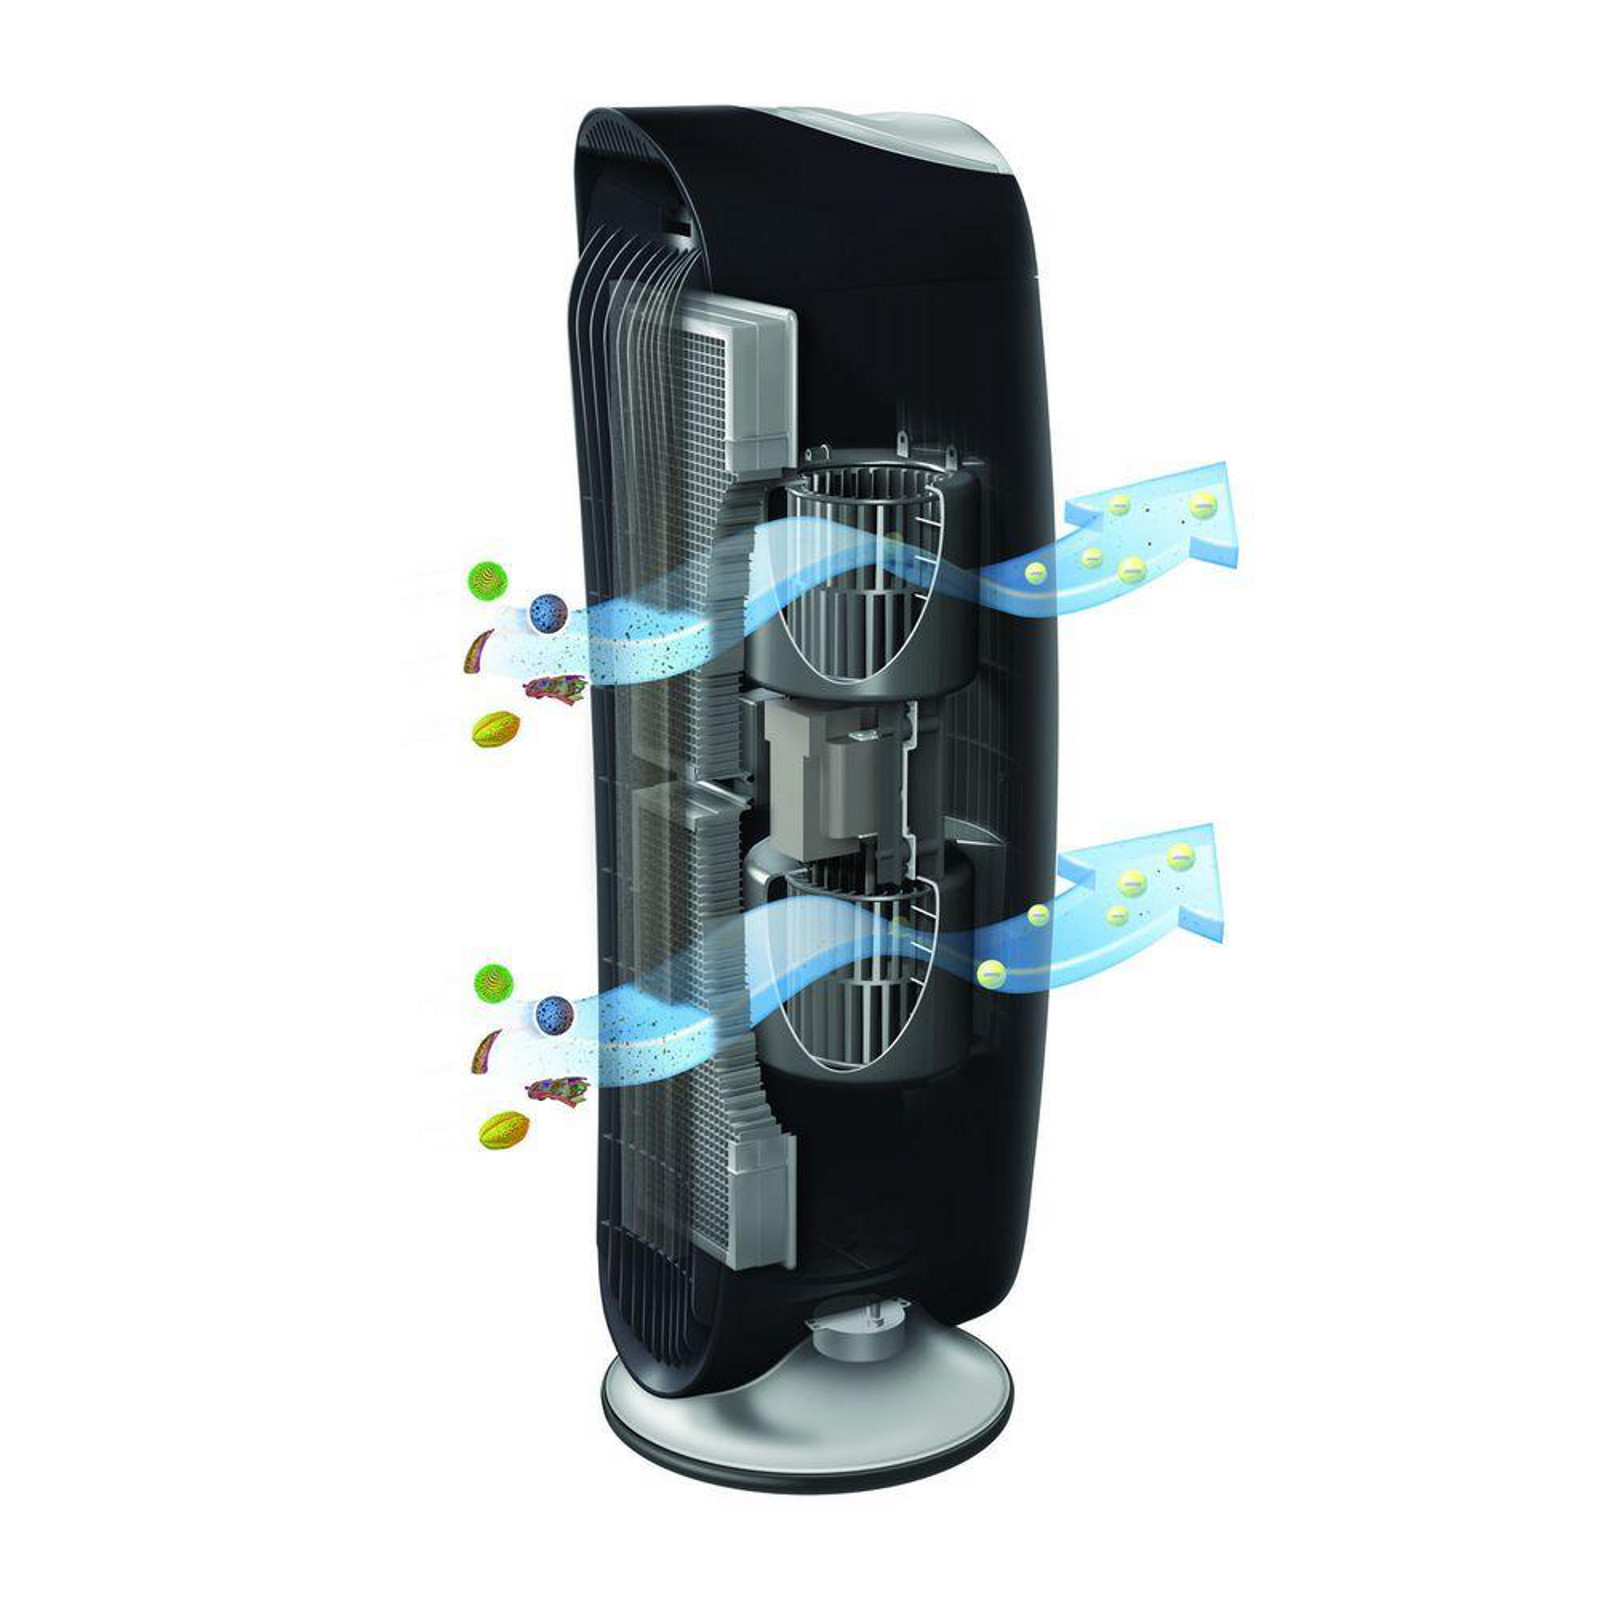 Honeywell Tower Air Purifier with Oscillation.